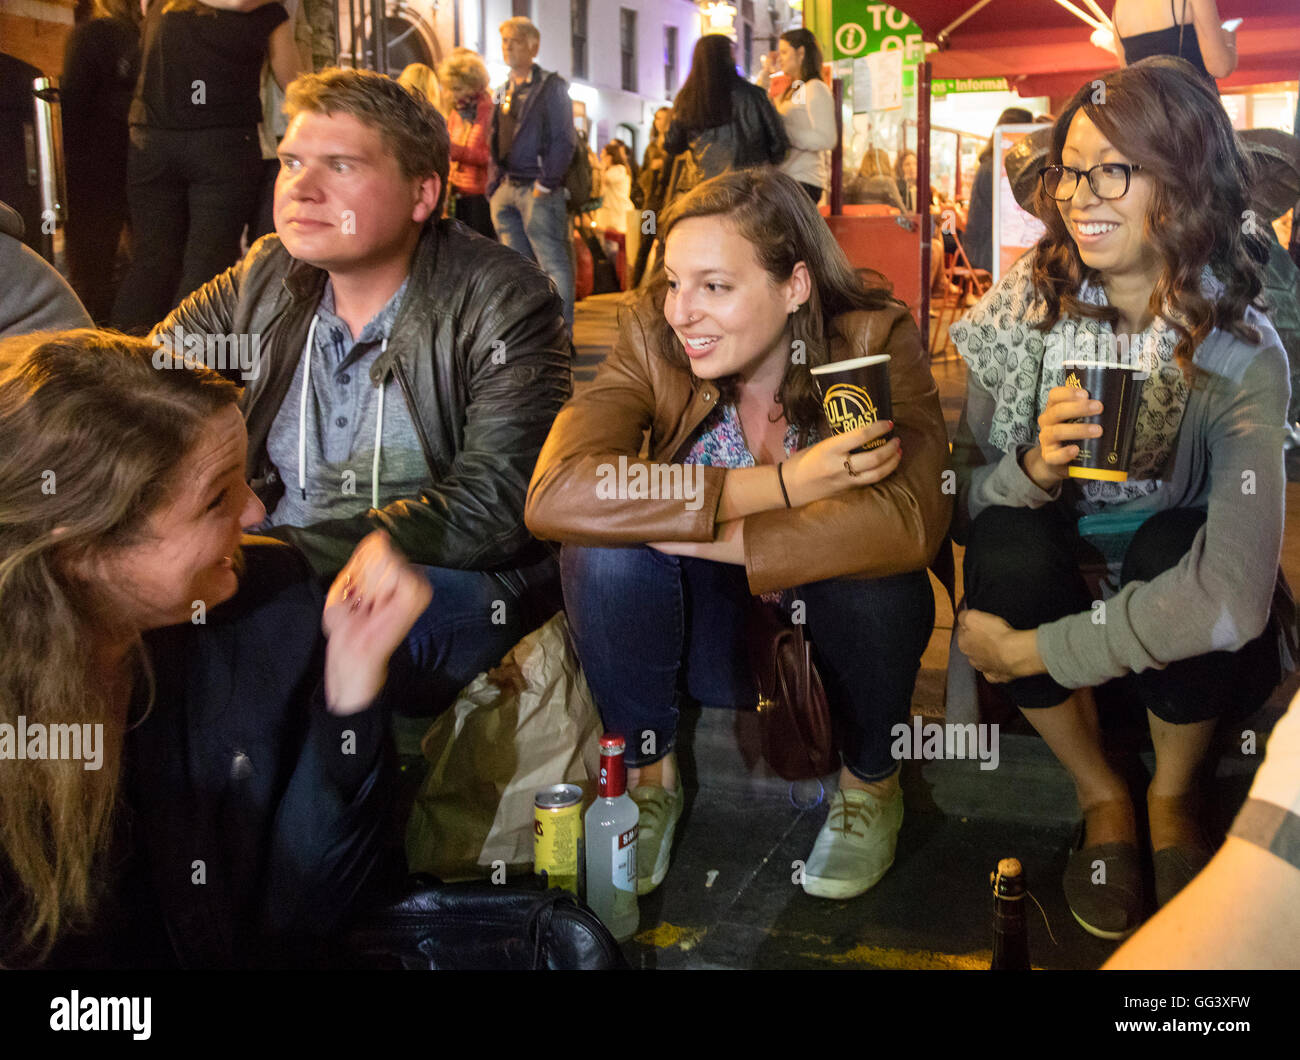 youths sitting on steps drinking at night in Temple Bar, Dublin, Ireland - Stock Image